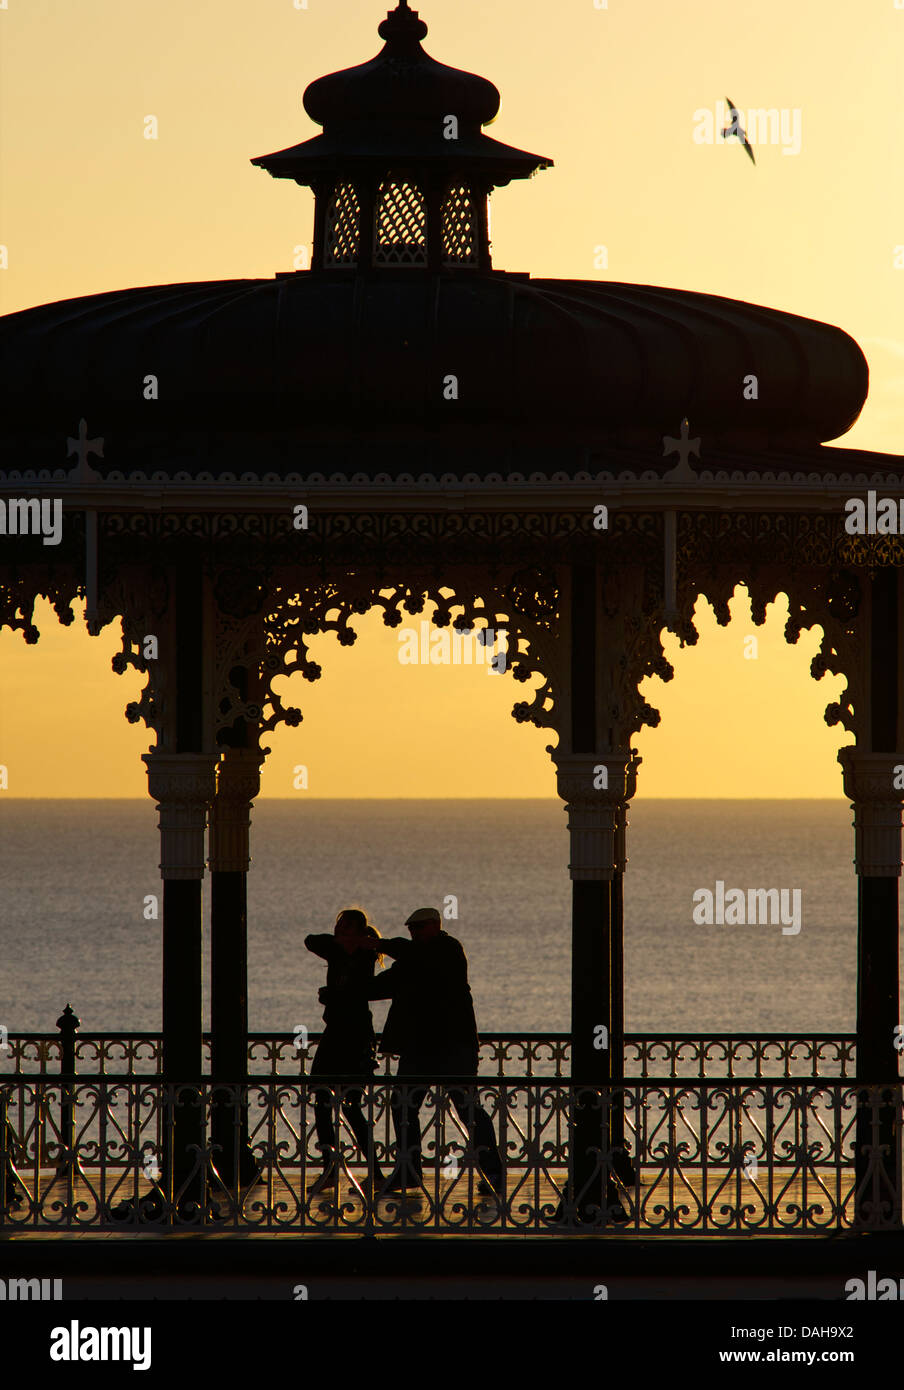 Silhouetted couple dancing on the Victorian bandstand, Brighton seafront. East Sussex, England - Stock Image